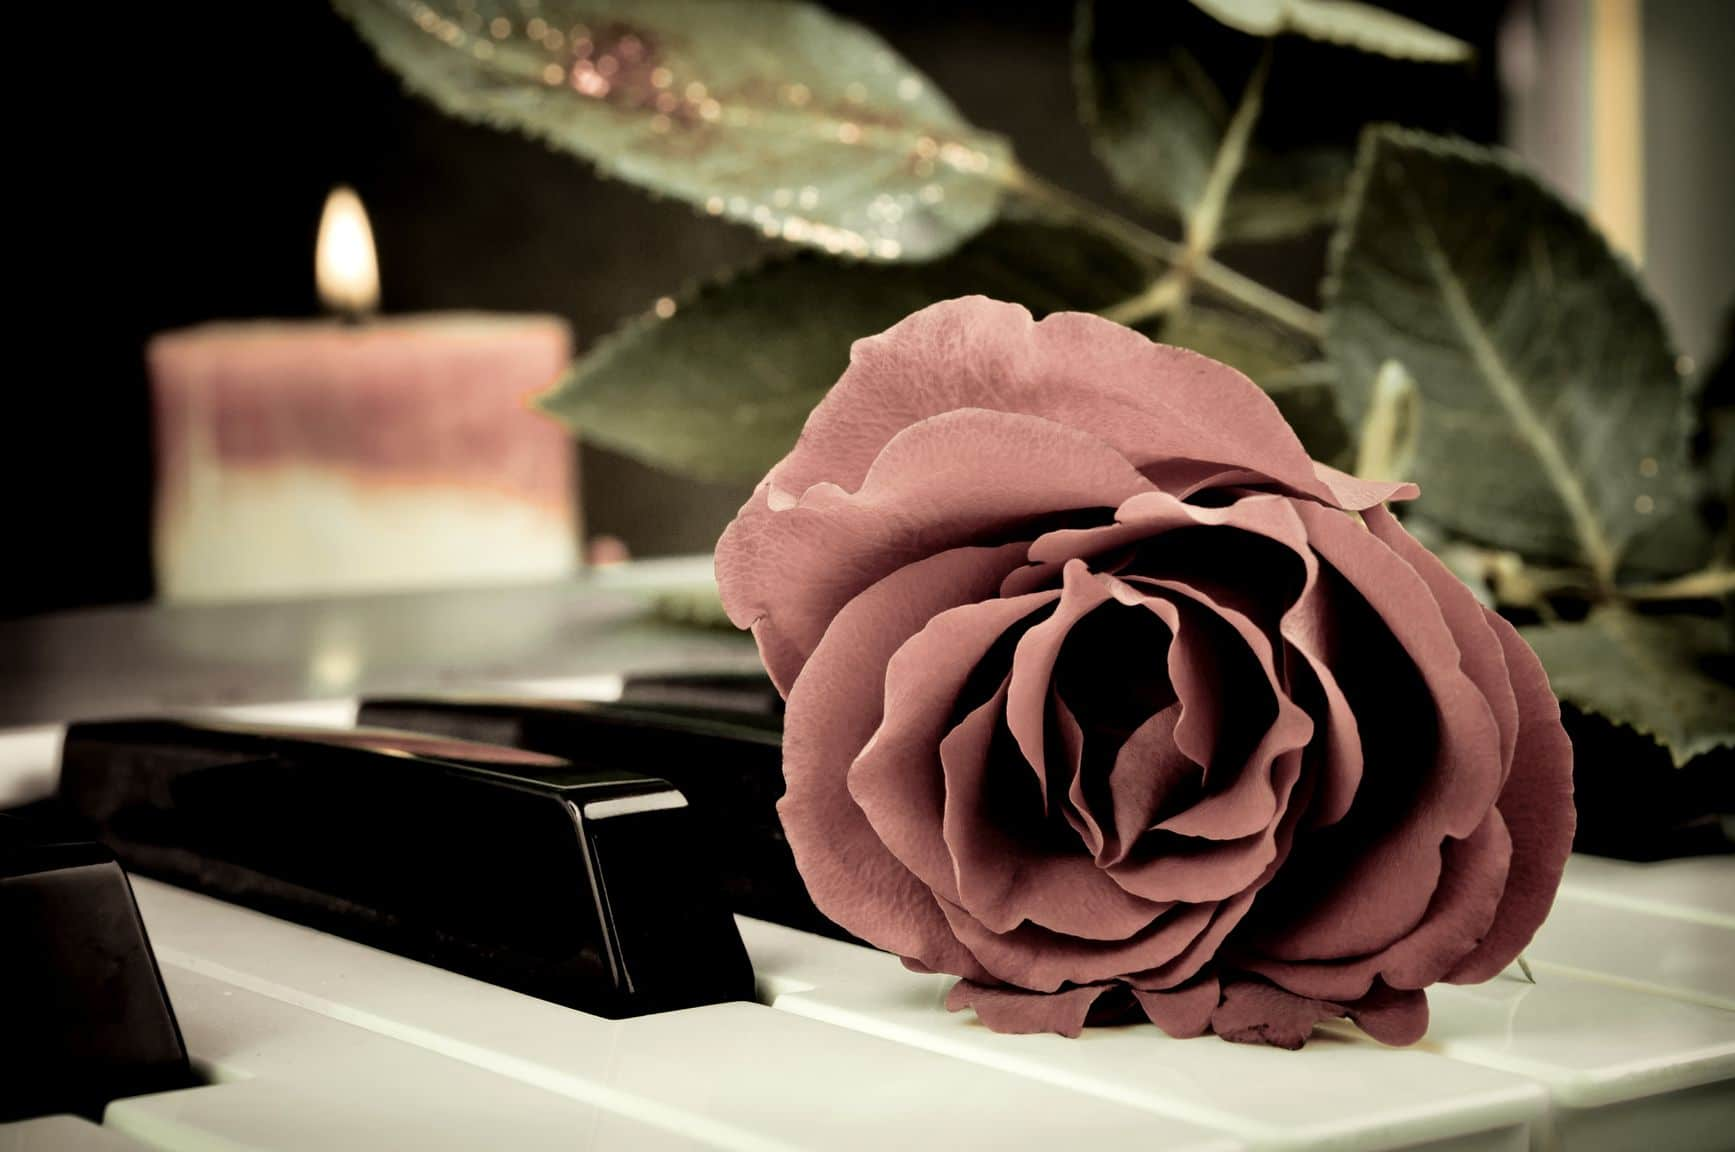 Red rose on the synthesizer keyboard and burning candle in the background